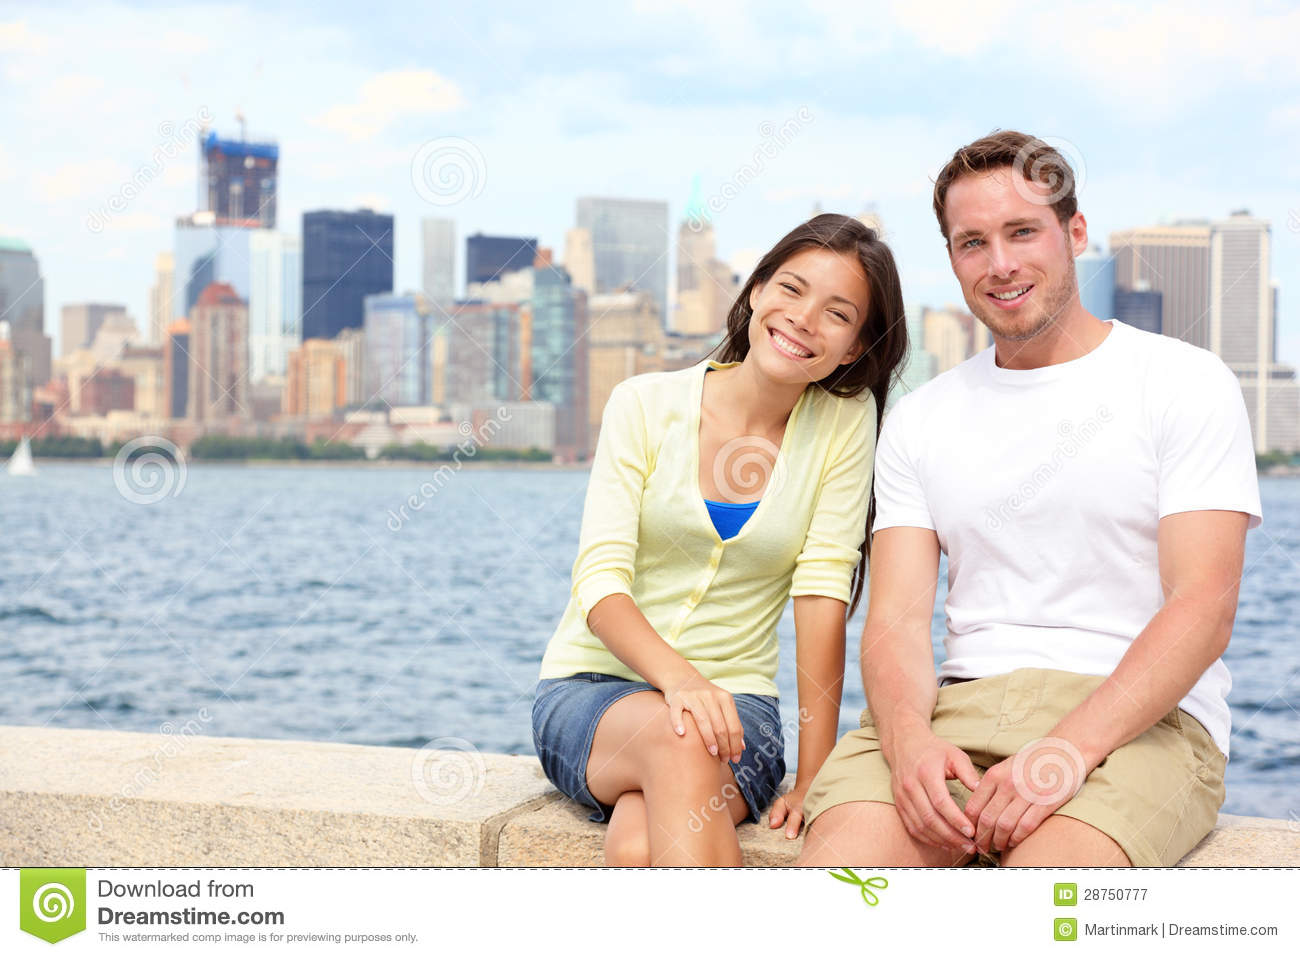 Free online dating in new york